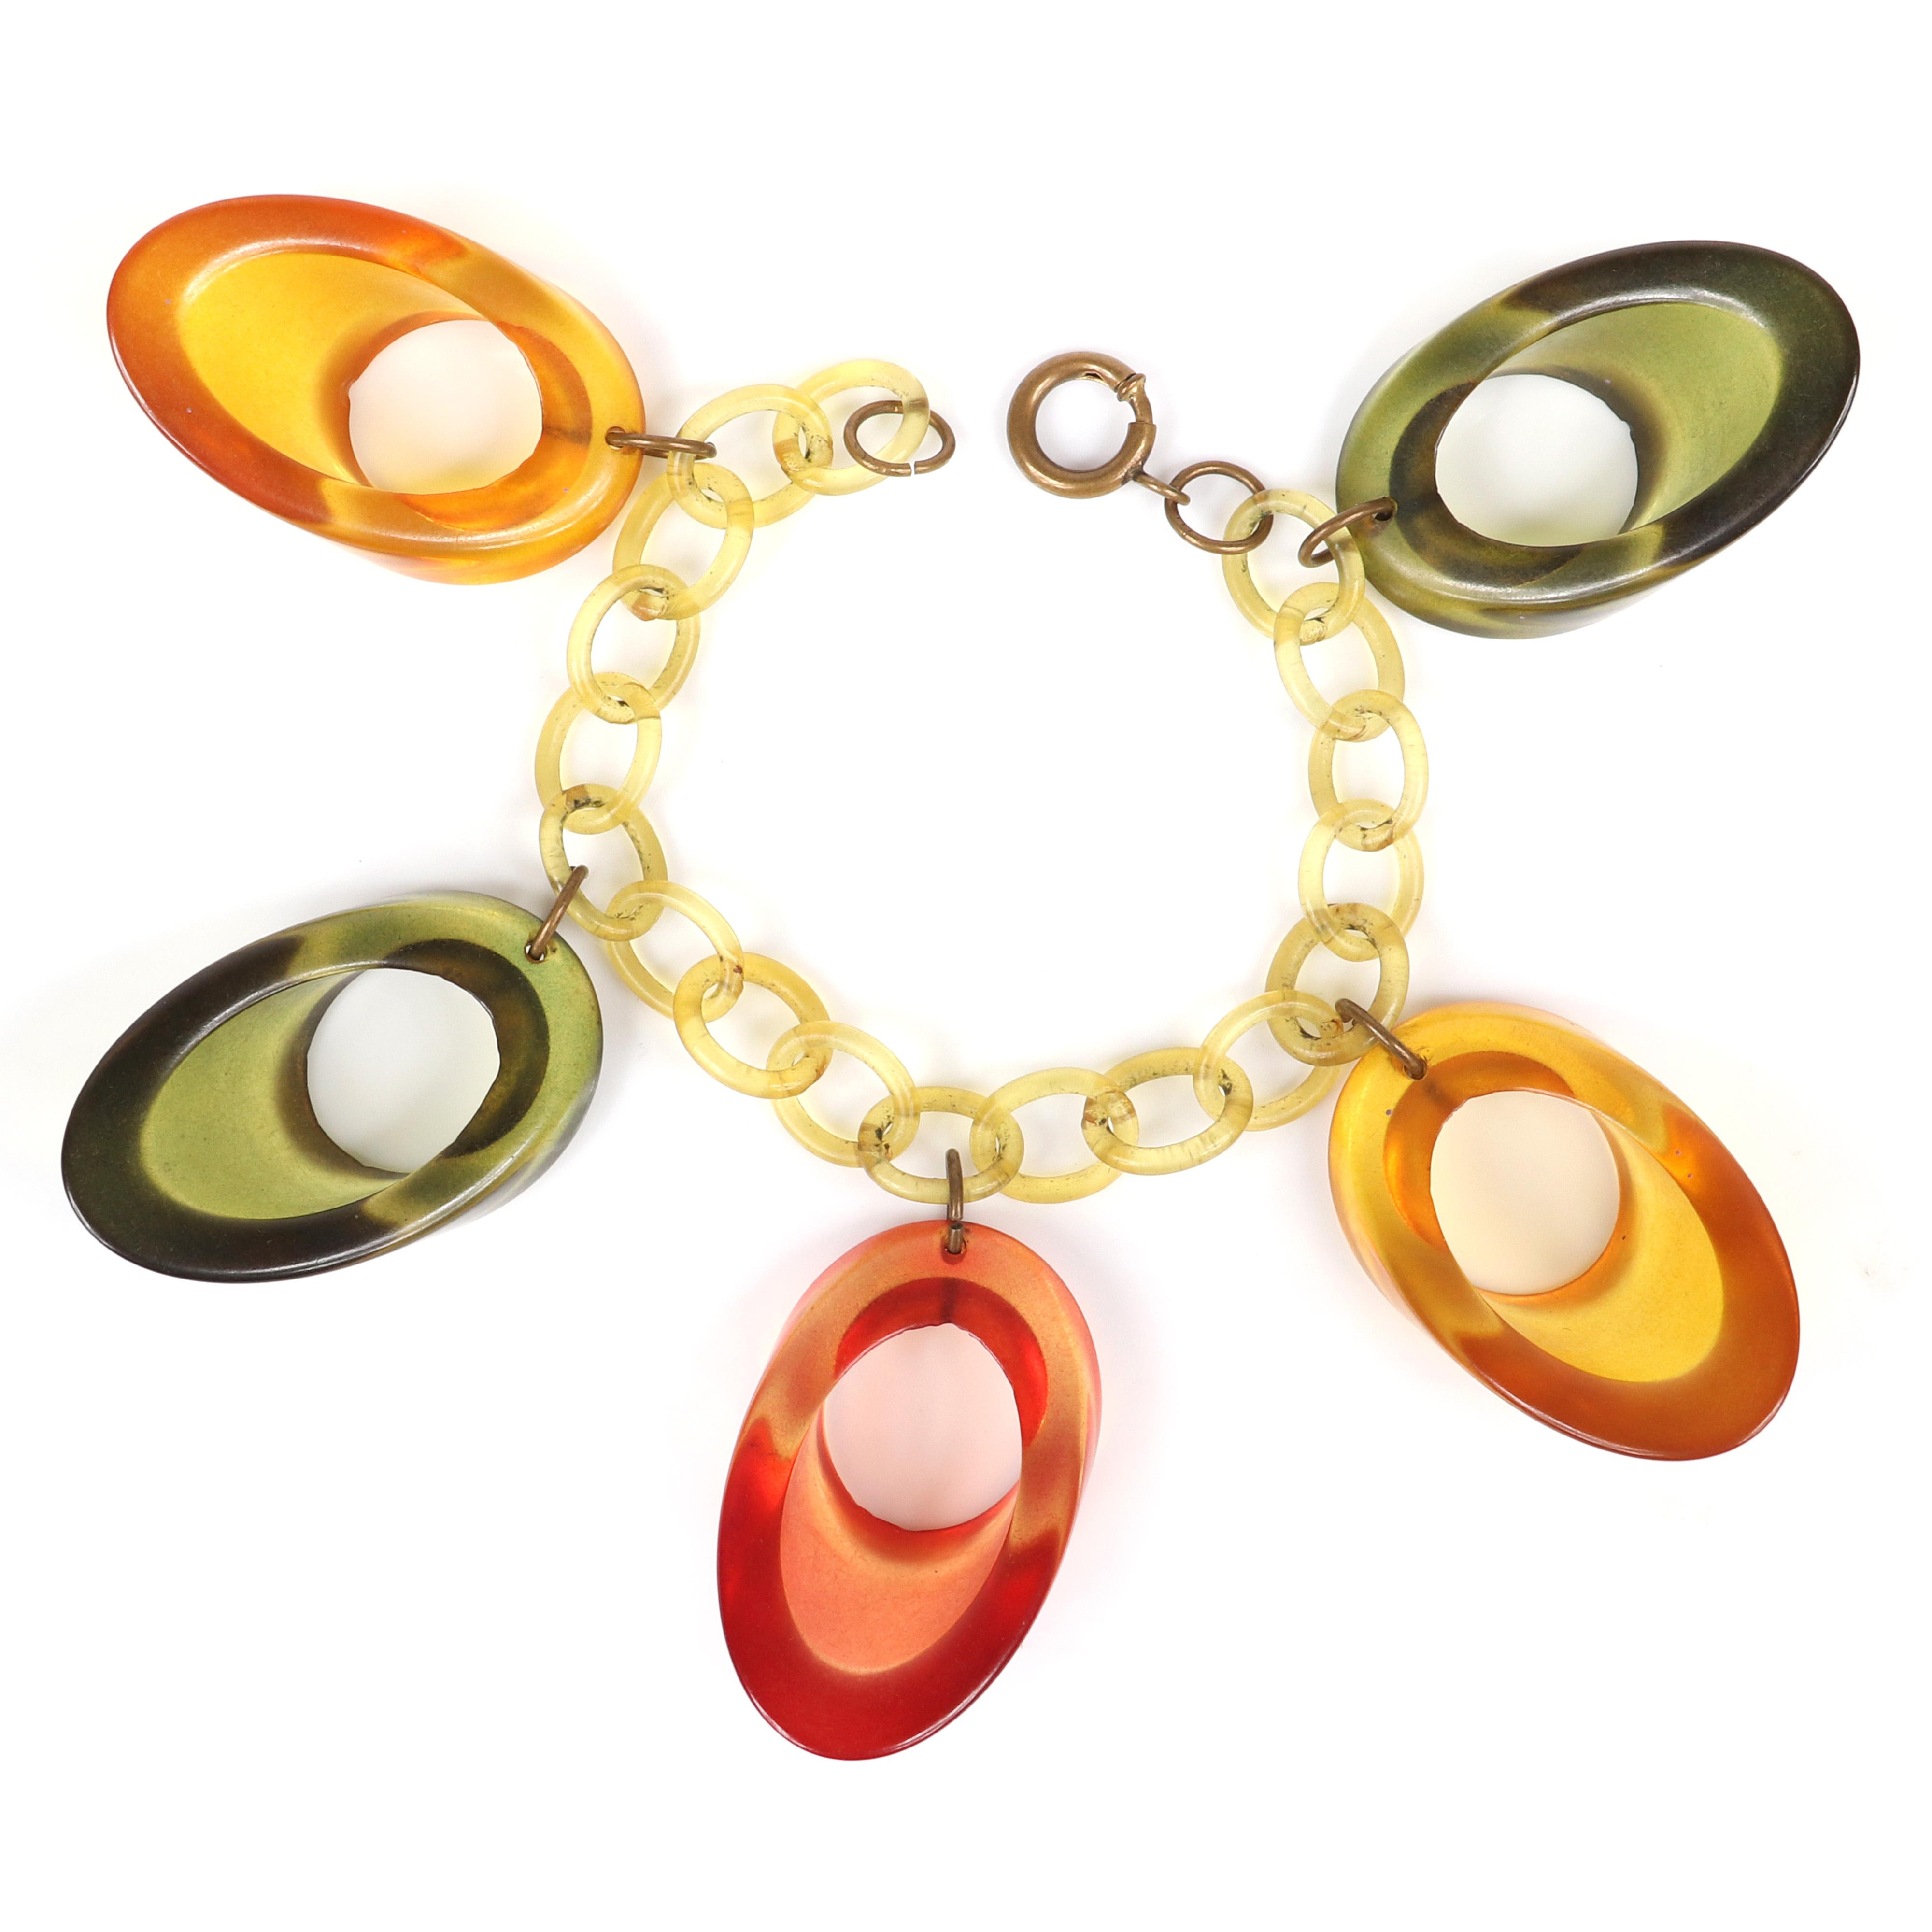 """Vintage Bakelite bracelet with celluloid chain bracelet and five large dangling chunky transparent Prystal circle wedge charms. 7 1/2""""L, 1 1/4""""H (charm)"""